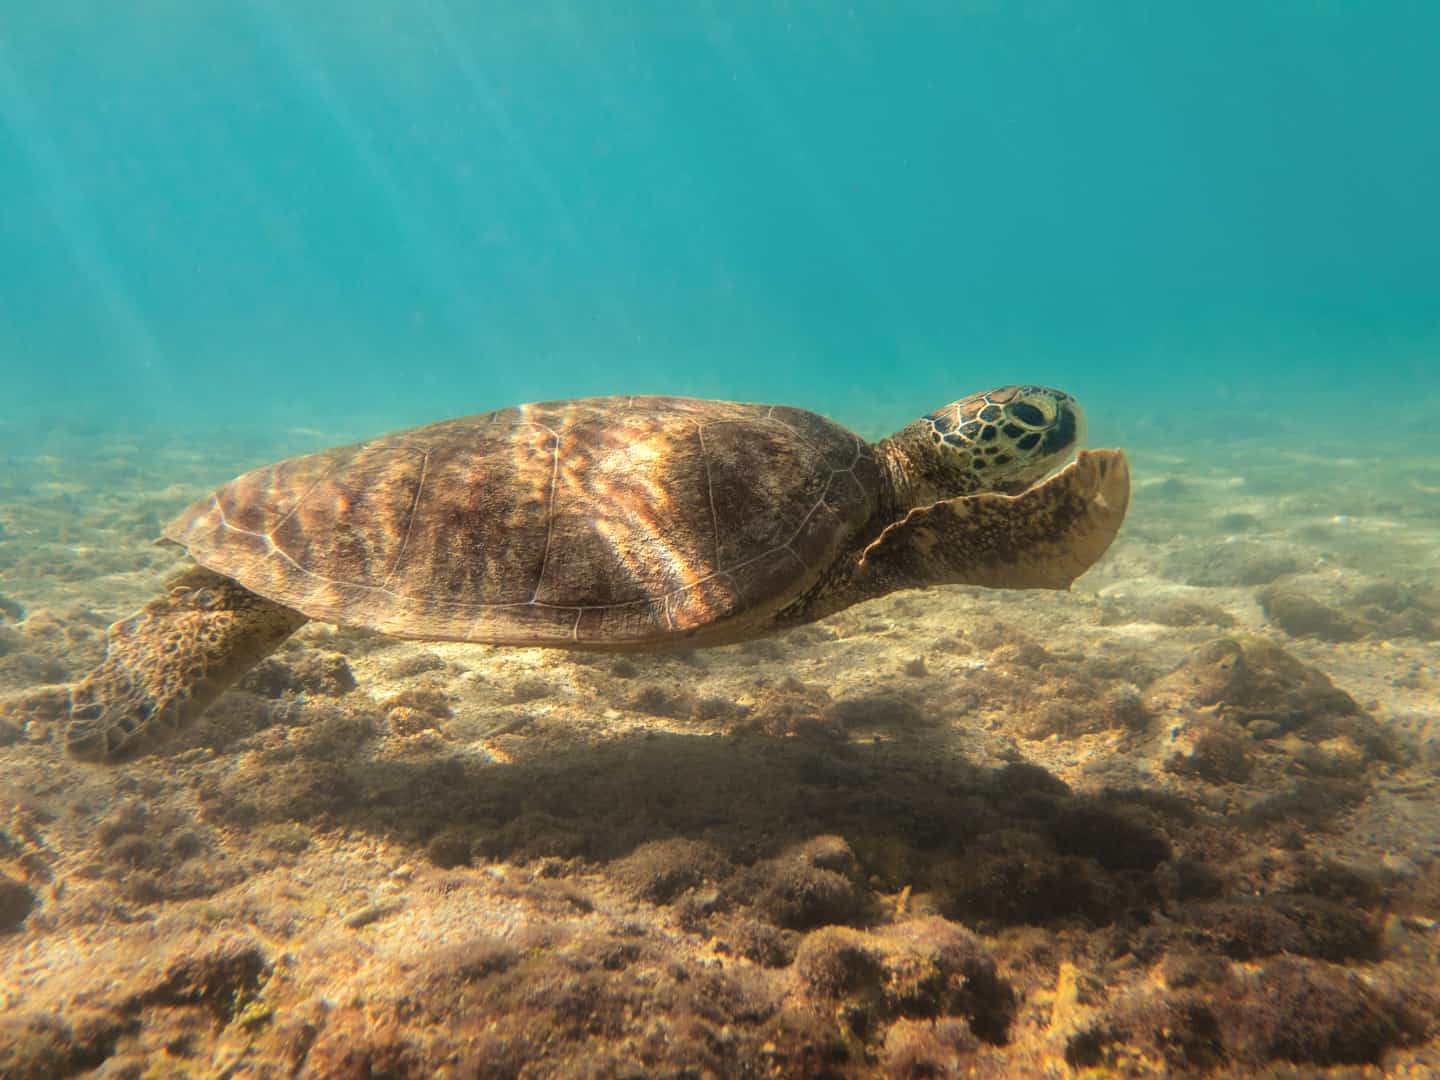 An underwater image of a green turtle swimming just off the beach of Low Isles, Cairns, Australia